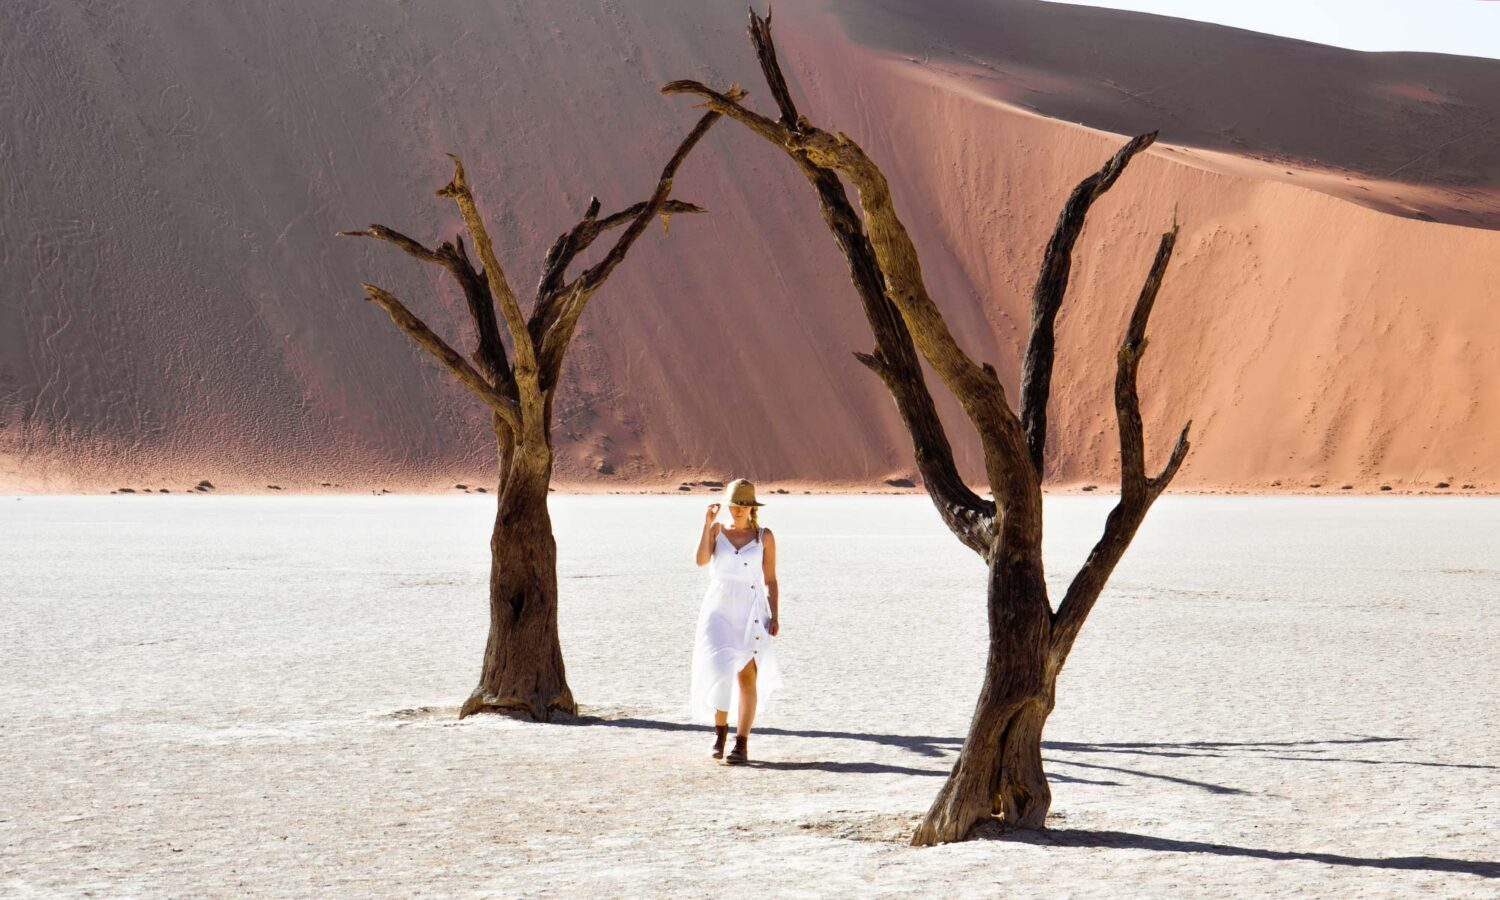 Enjoying a tranquil stroll in Deadvlei on our two days in Sossusvlei.